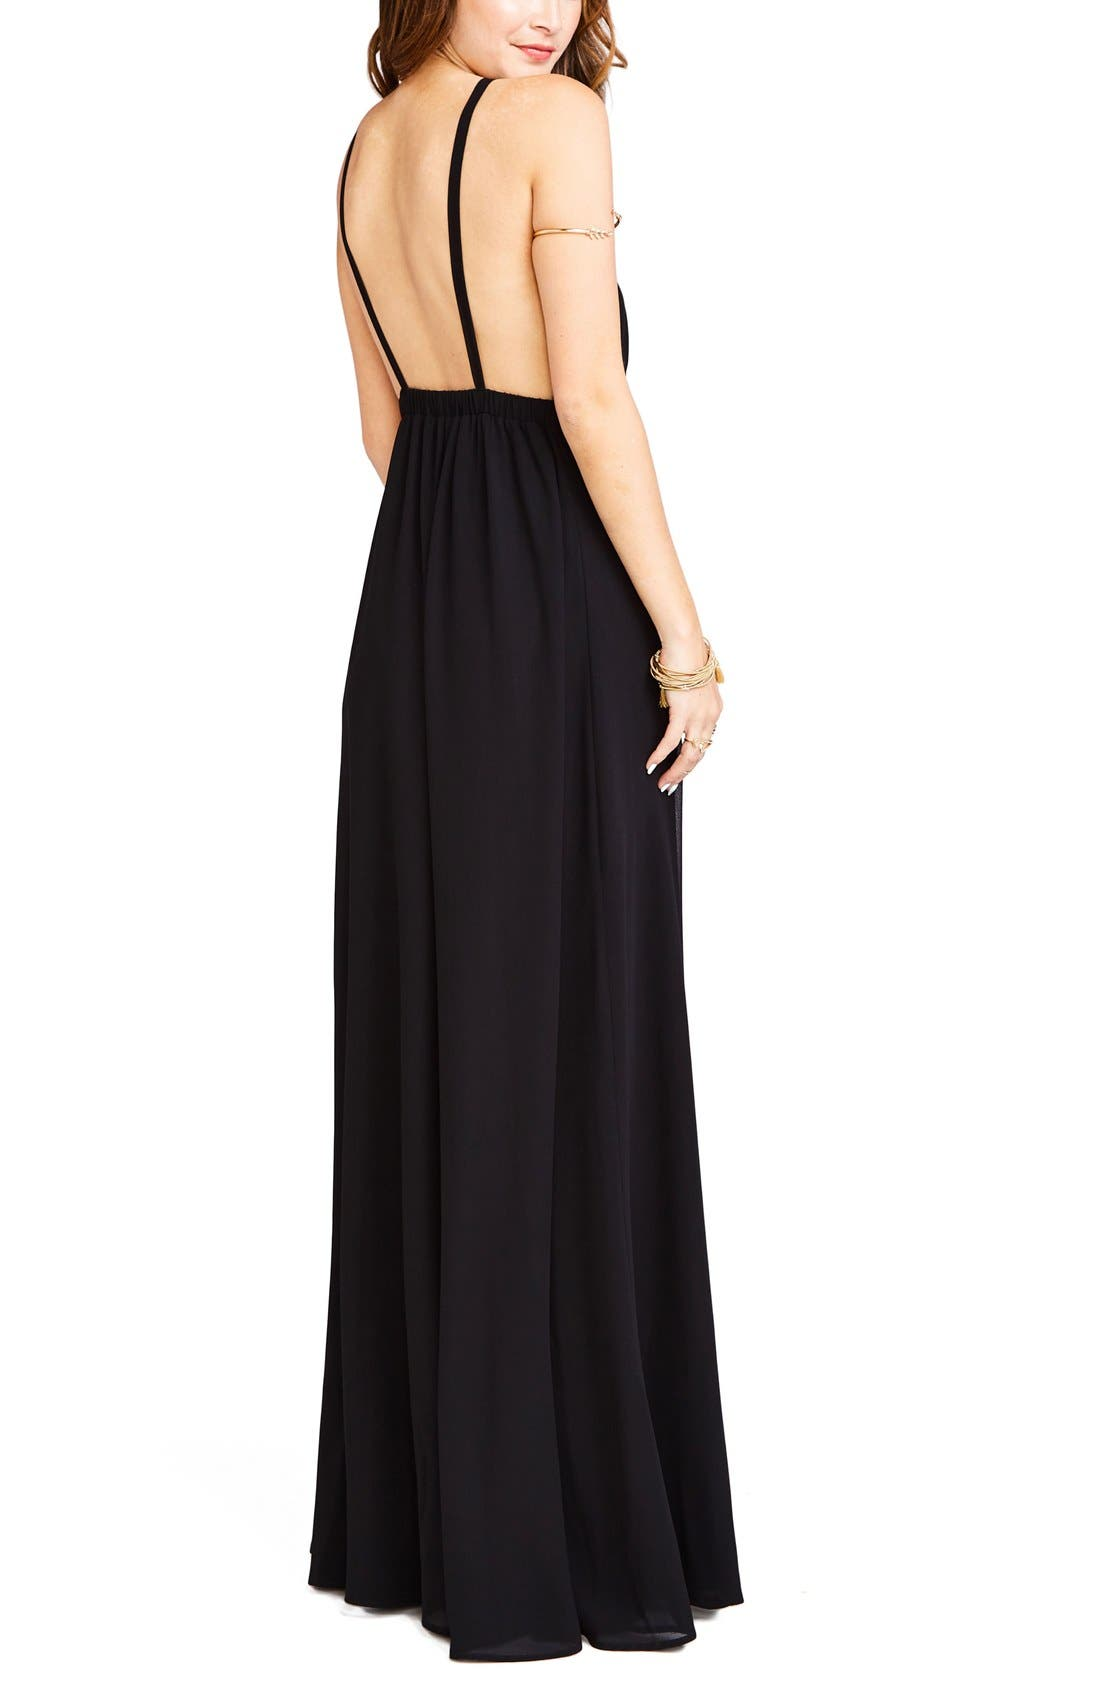 Amanda Open Back Blouson Gown,                             Alternate thumbnail 13, color,